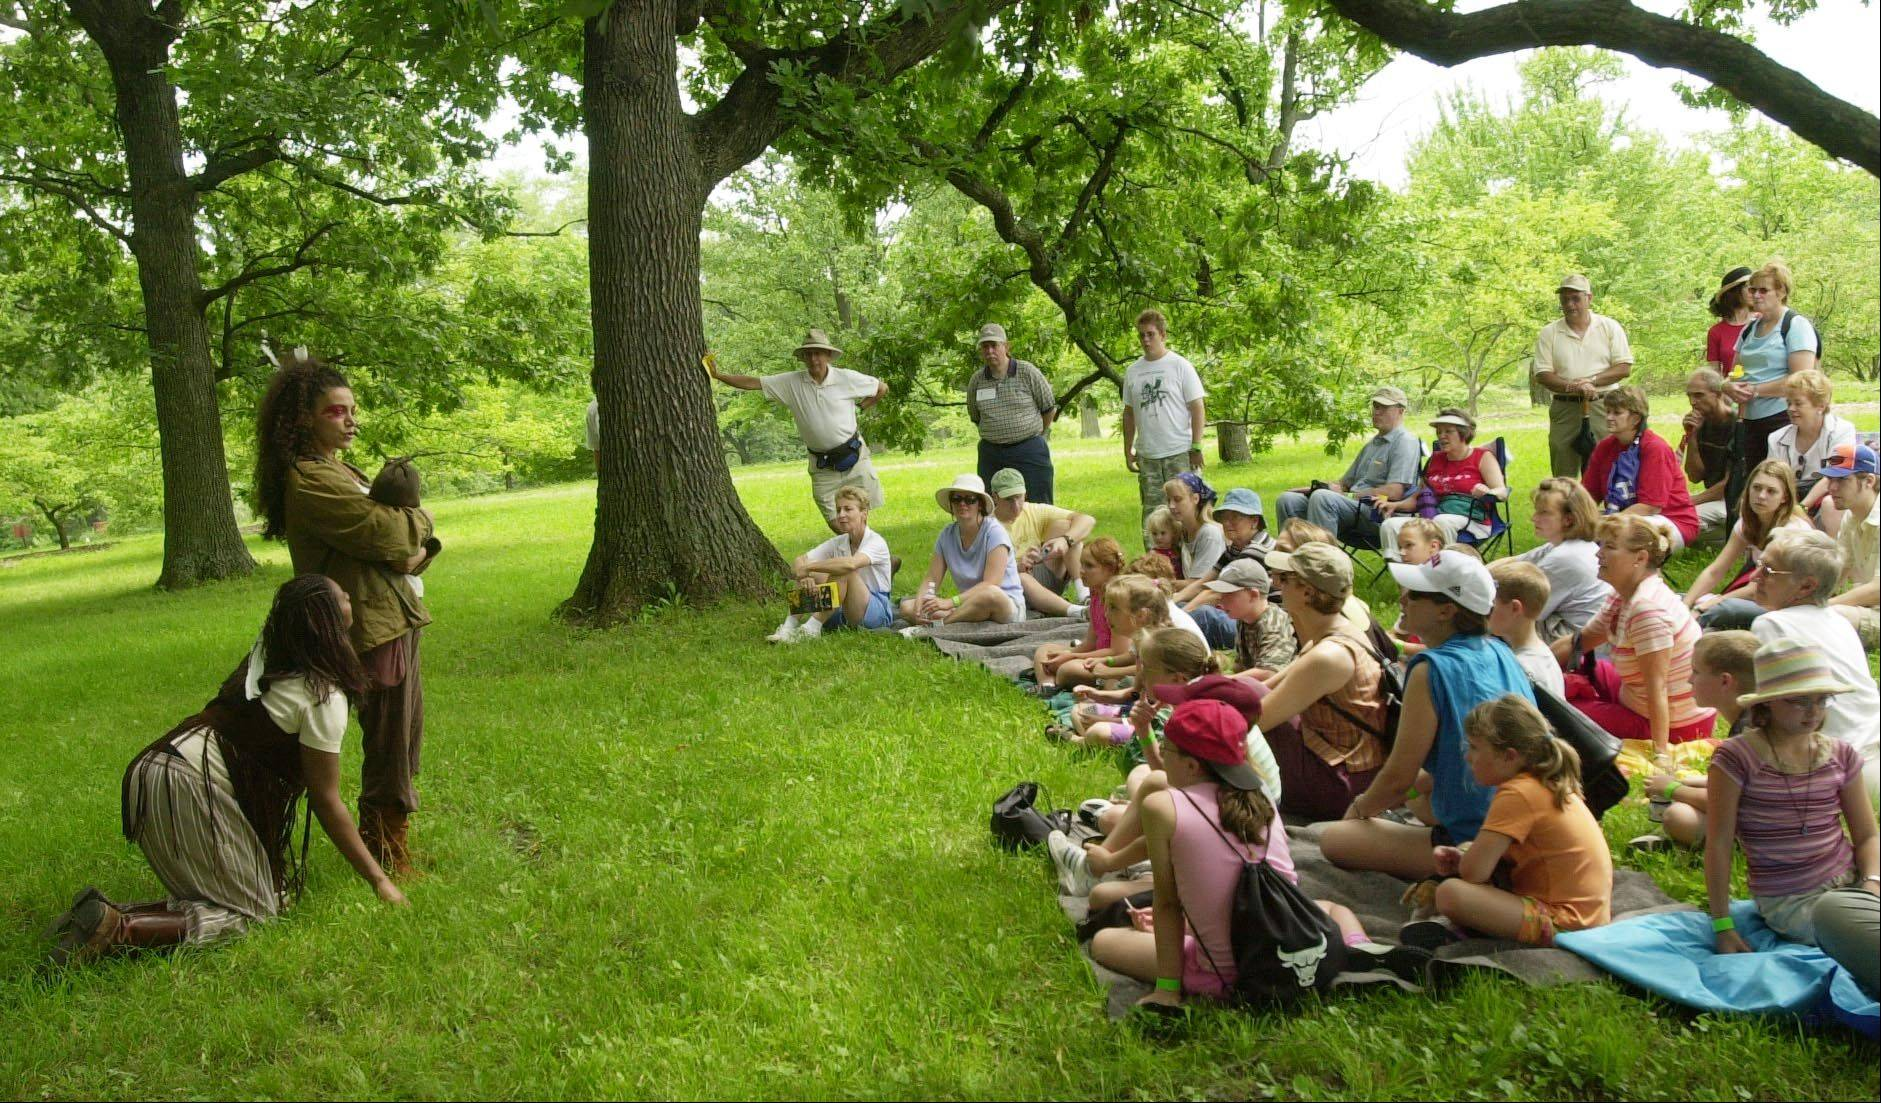 Theatre-Hikes performs shows outdoors at Morton Arboretum, using natural settings as a backdrop for the action. Audiences follow the actors from scene to scene, covering about two miles during a performance.